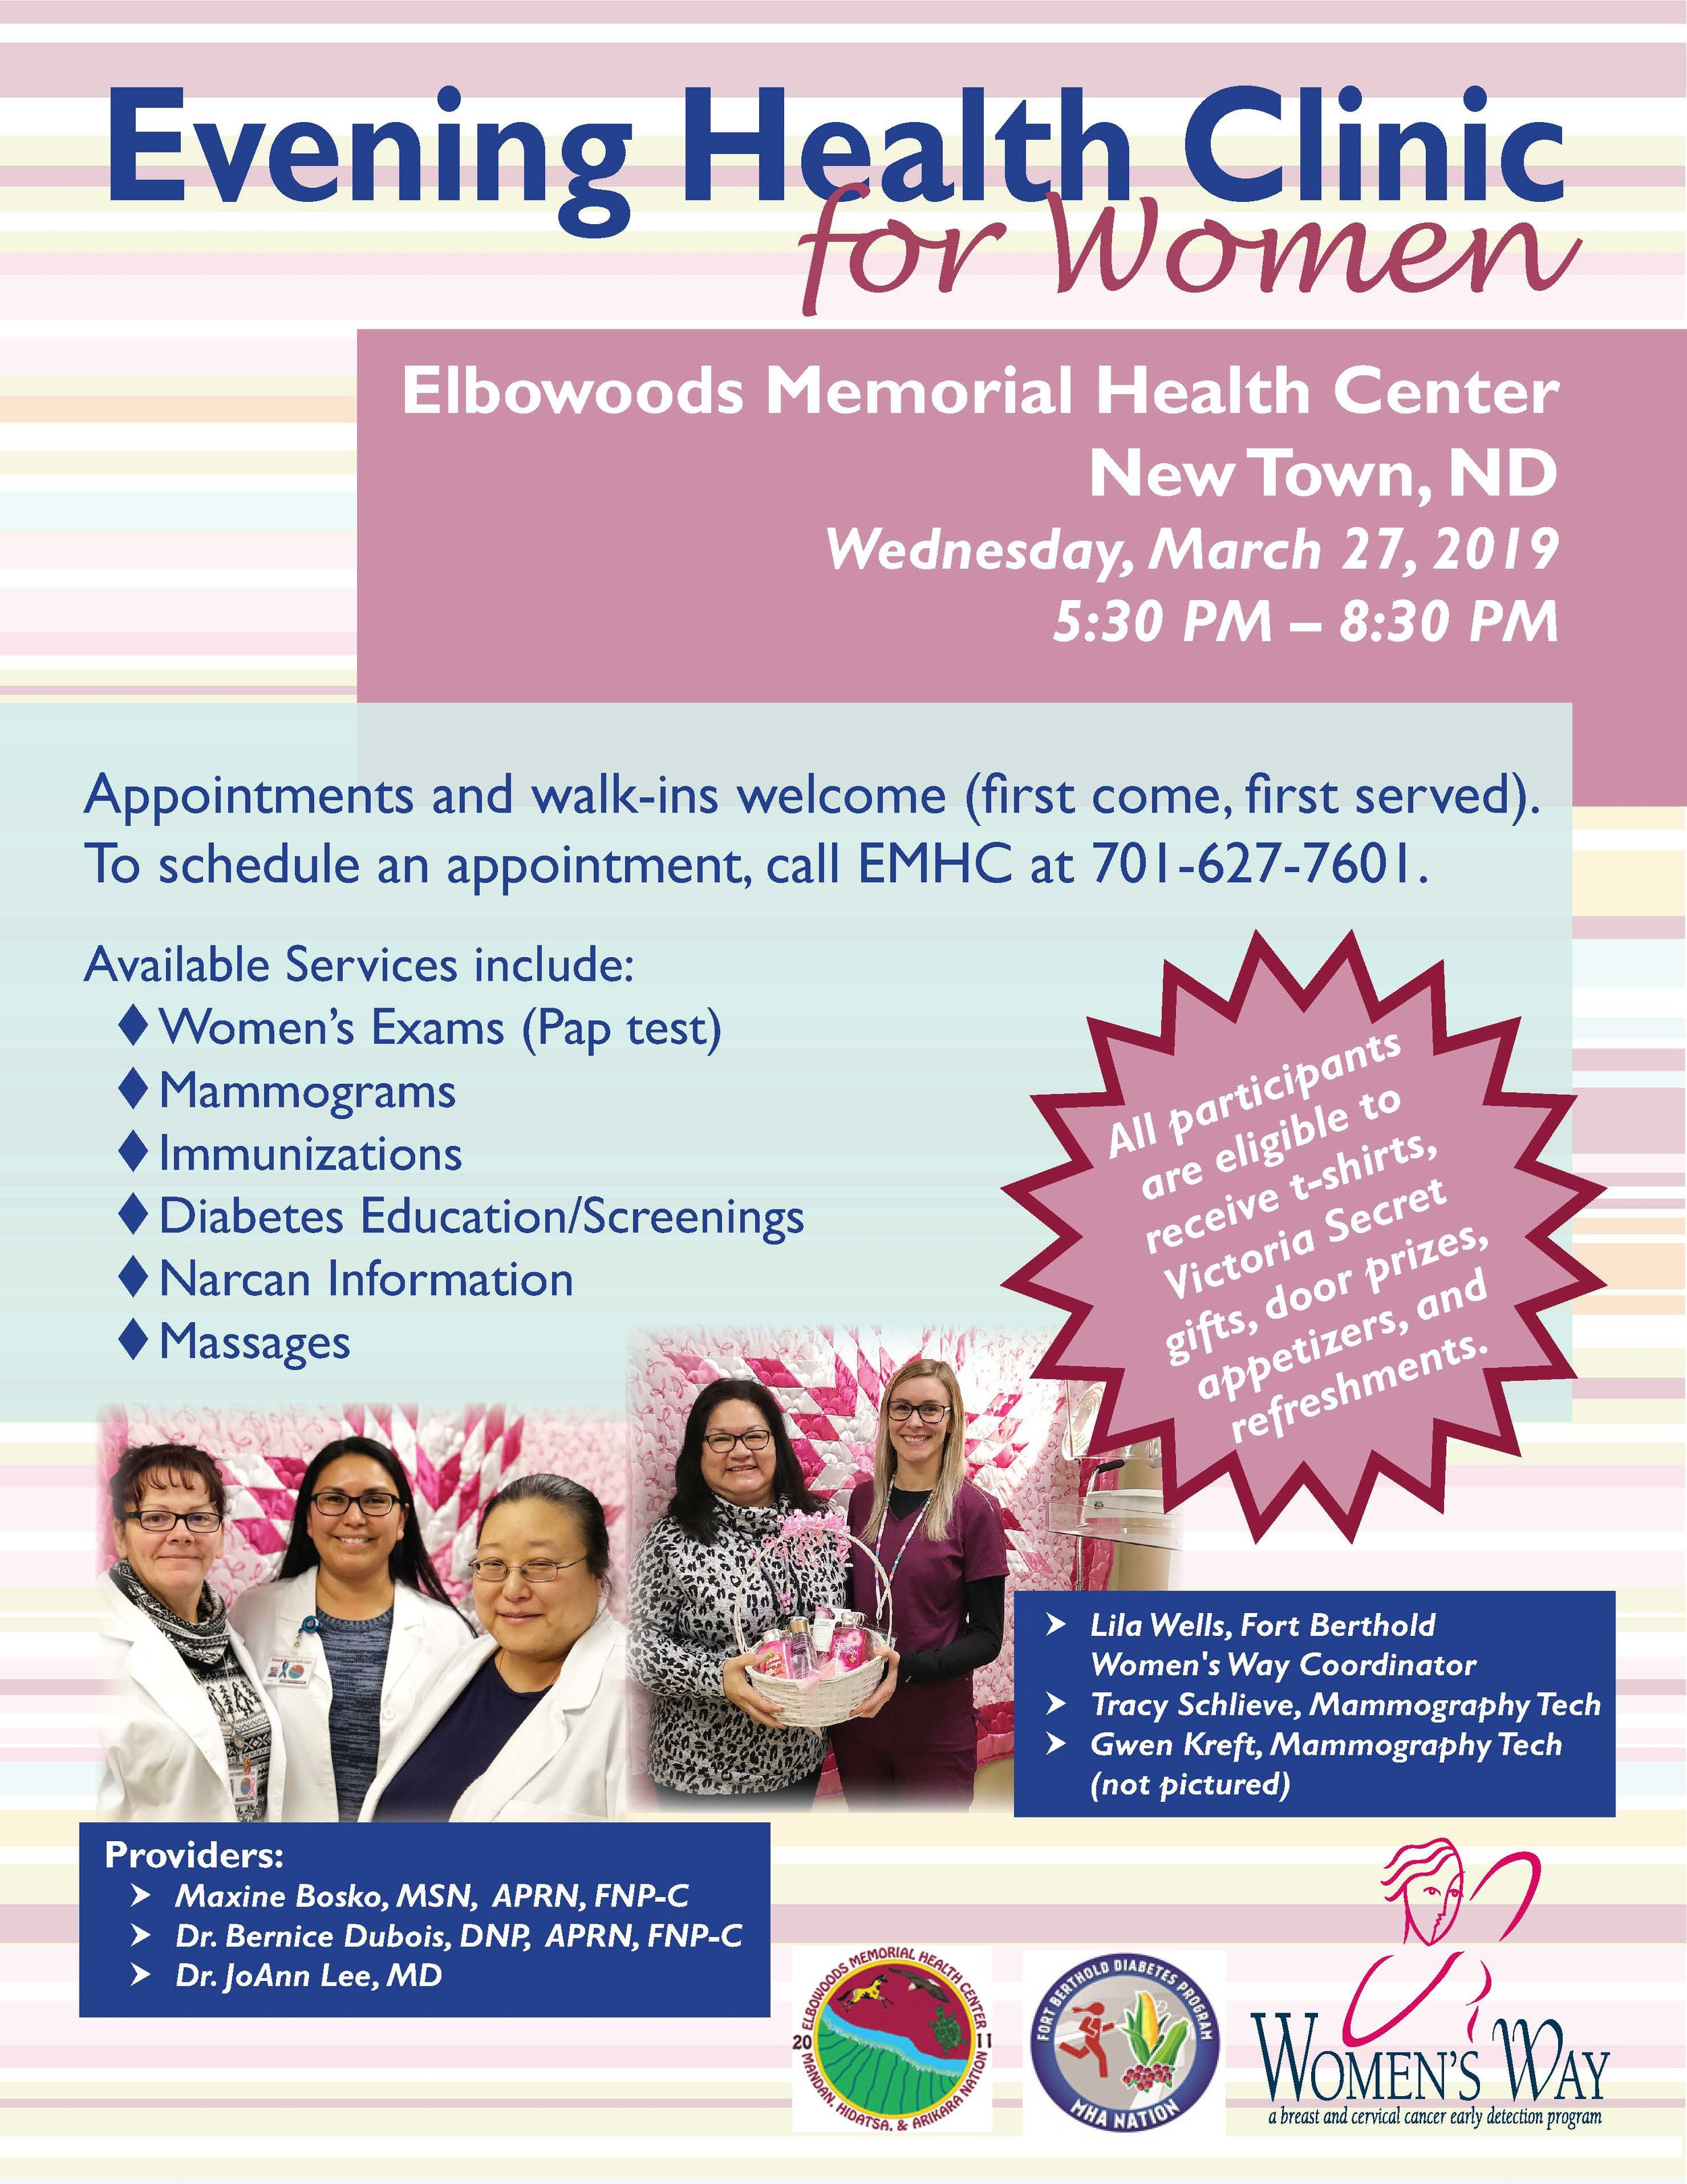 Evening Health Clinic for Women March 27 2019.jpg